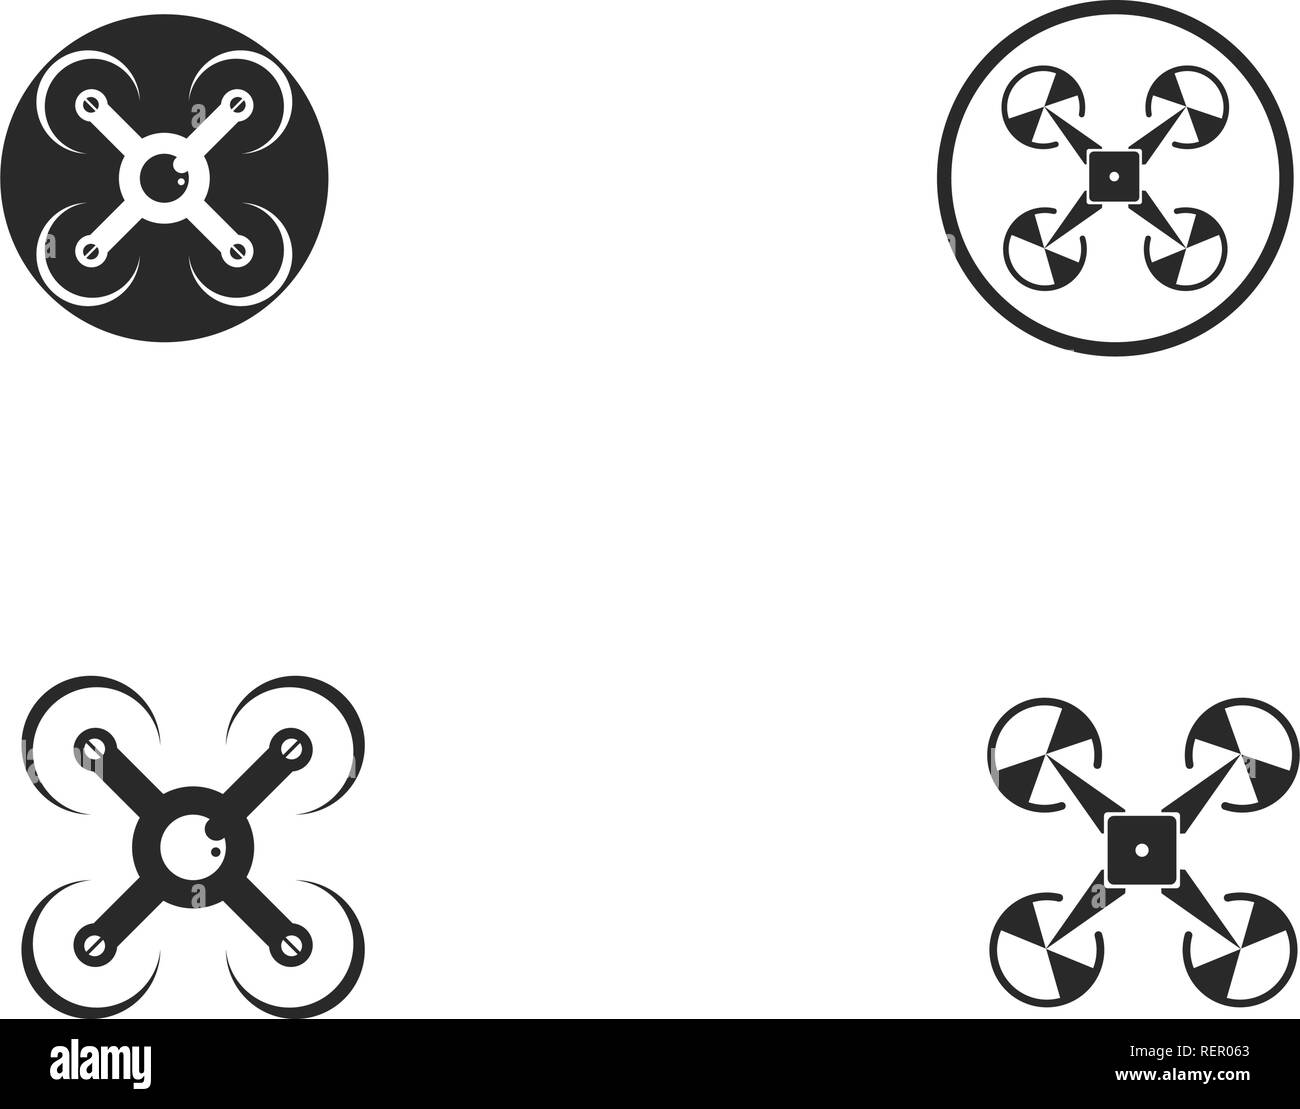 Drone logo and symbol vector - Stock Vector